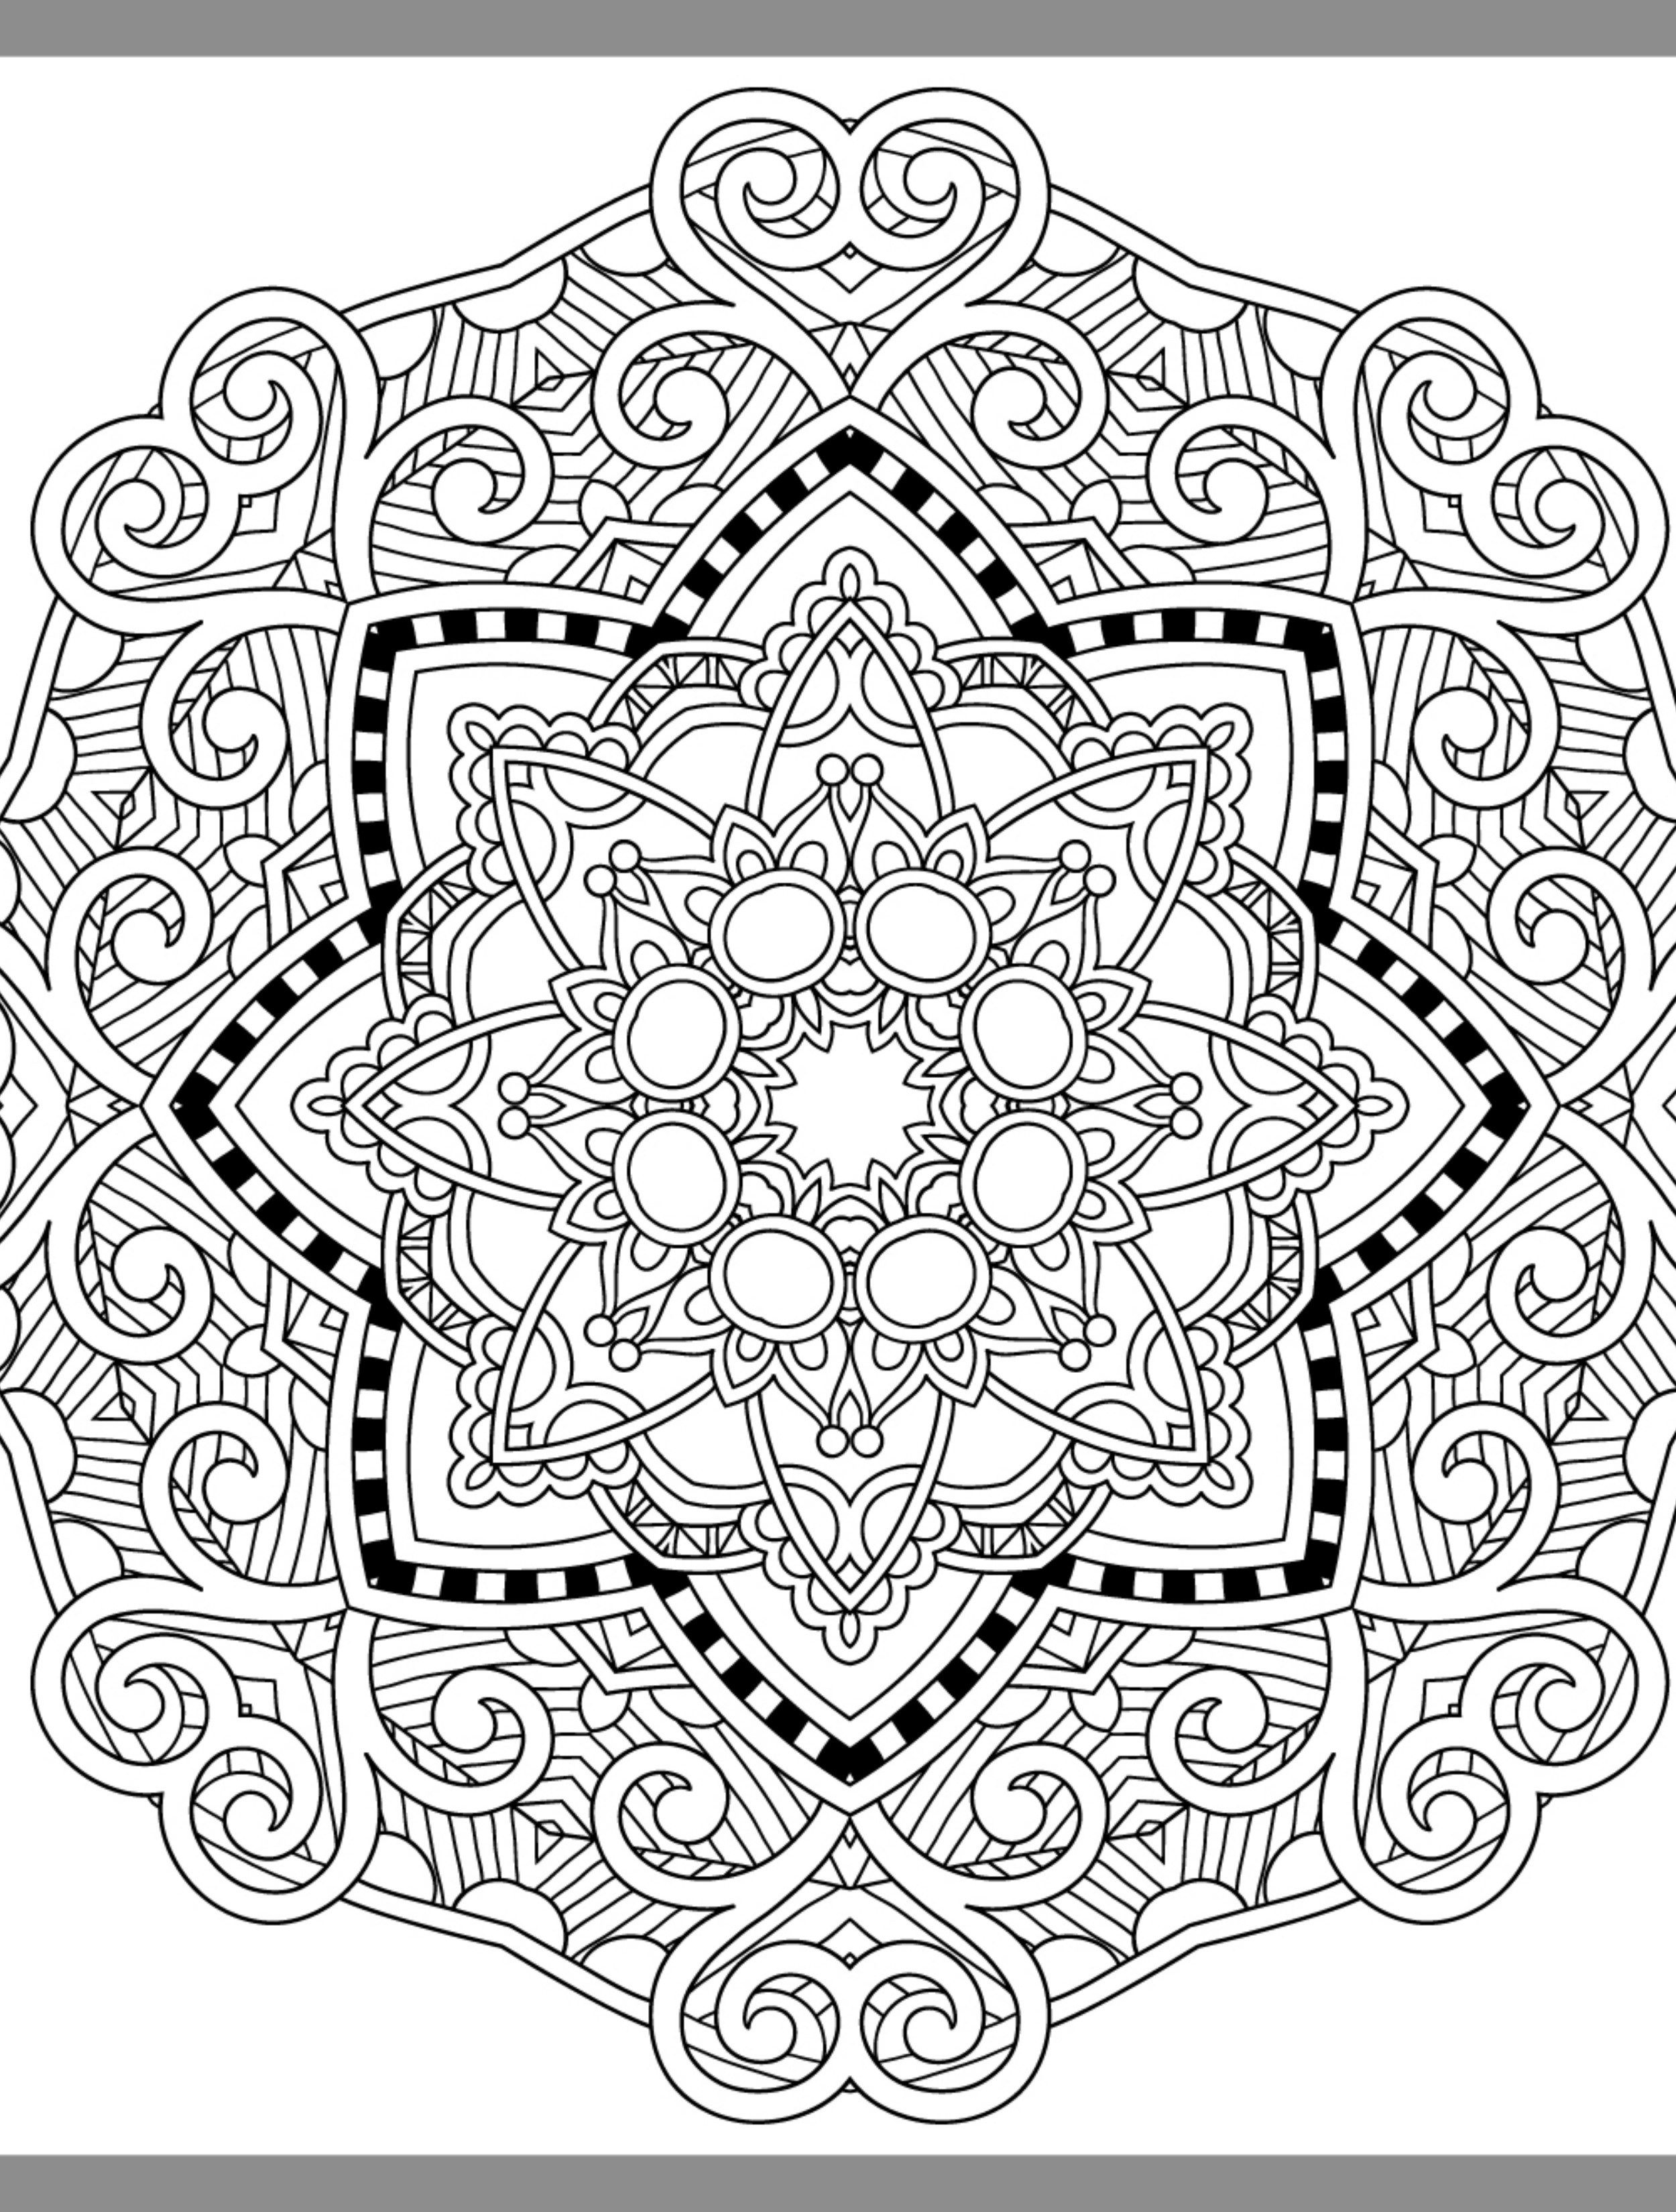 24 More Free Printable Adult Coloring Pages | Printable ...Detailed Mandala Coloring Pages For Adults